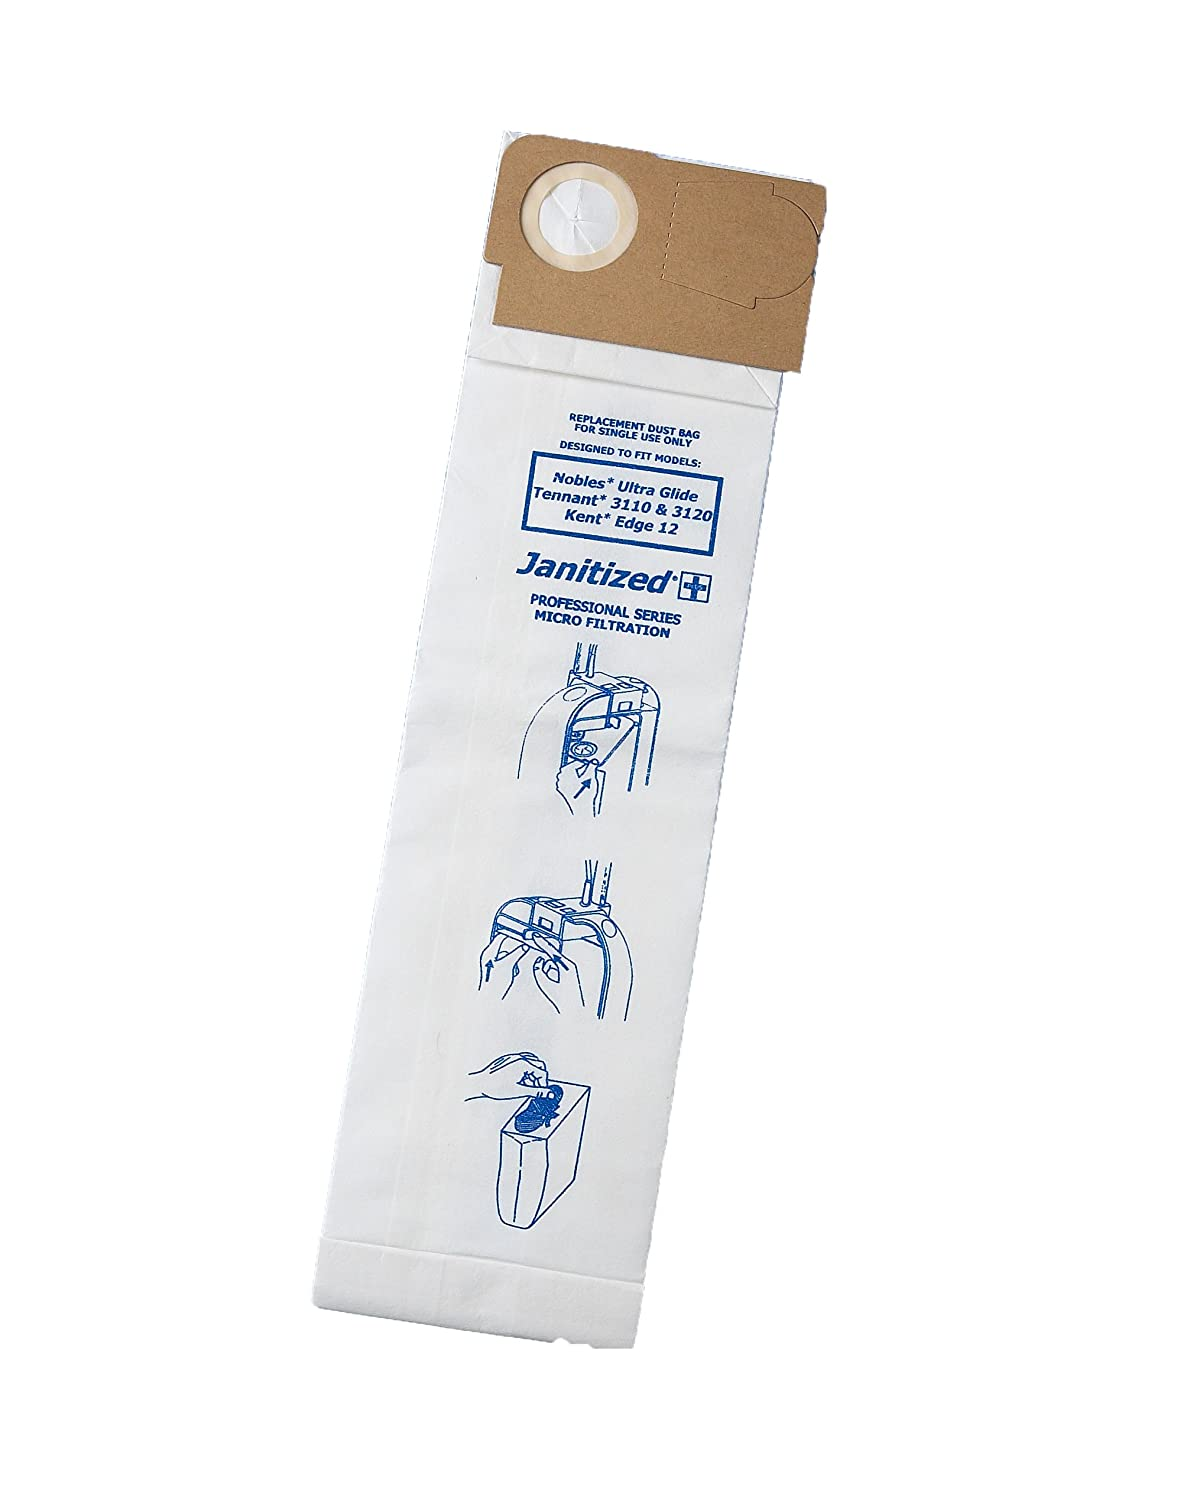 Janitized JAN-NOUG-2(10) Premium Replacement Commercial Vacuum Paper Bag for Nobles Ultra Glide V-DMU-15, Tennant 3110 and 3120, Vacuum Cleaners, OEM#1014505 (Pack of 10)